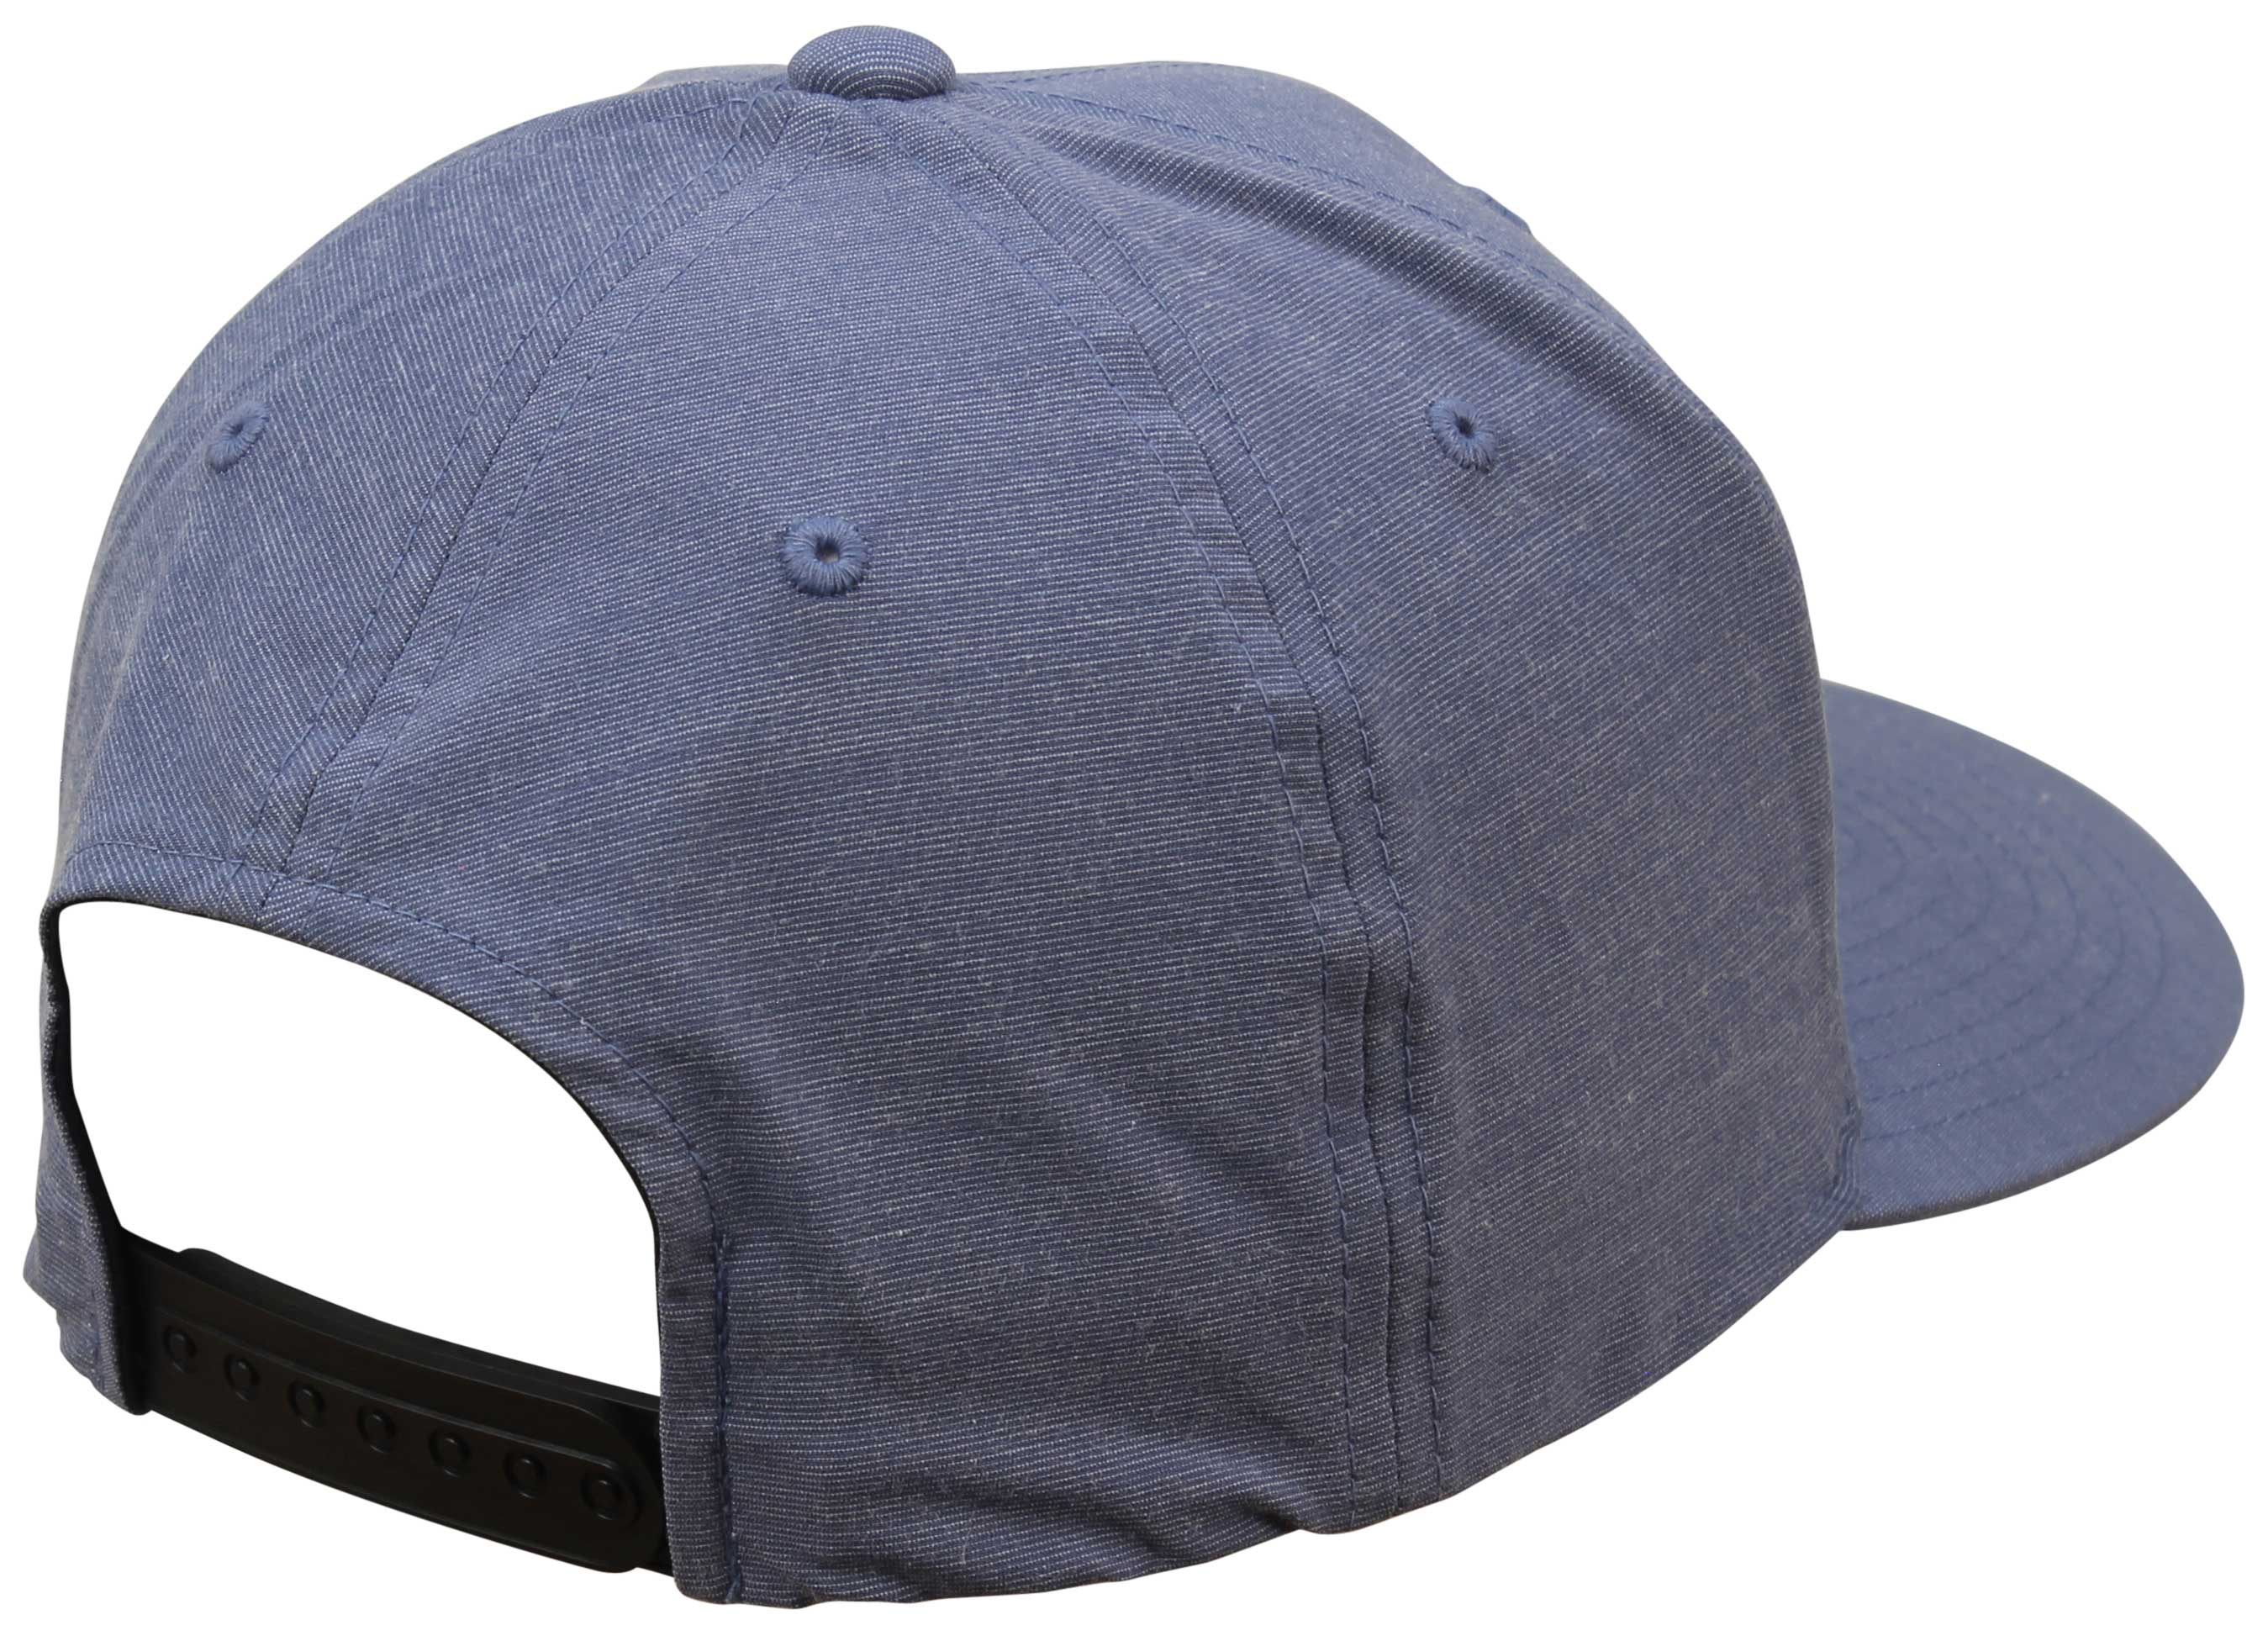 online retailer d979a 2033b Quiksilver Union Heather Snapback Hat - Bijou Blue - New - Back